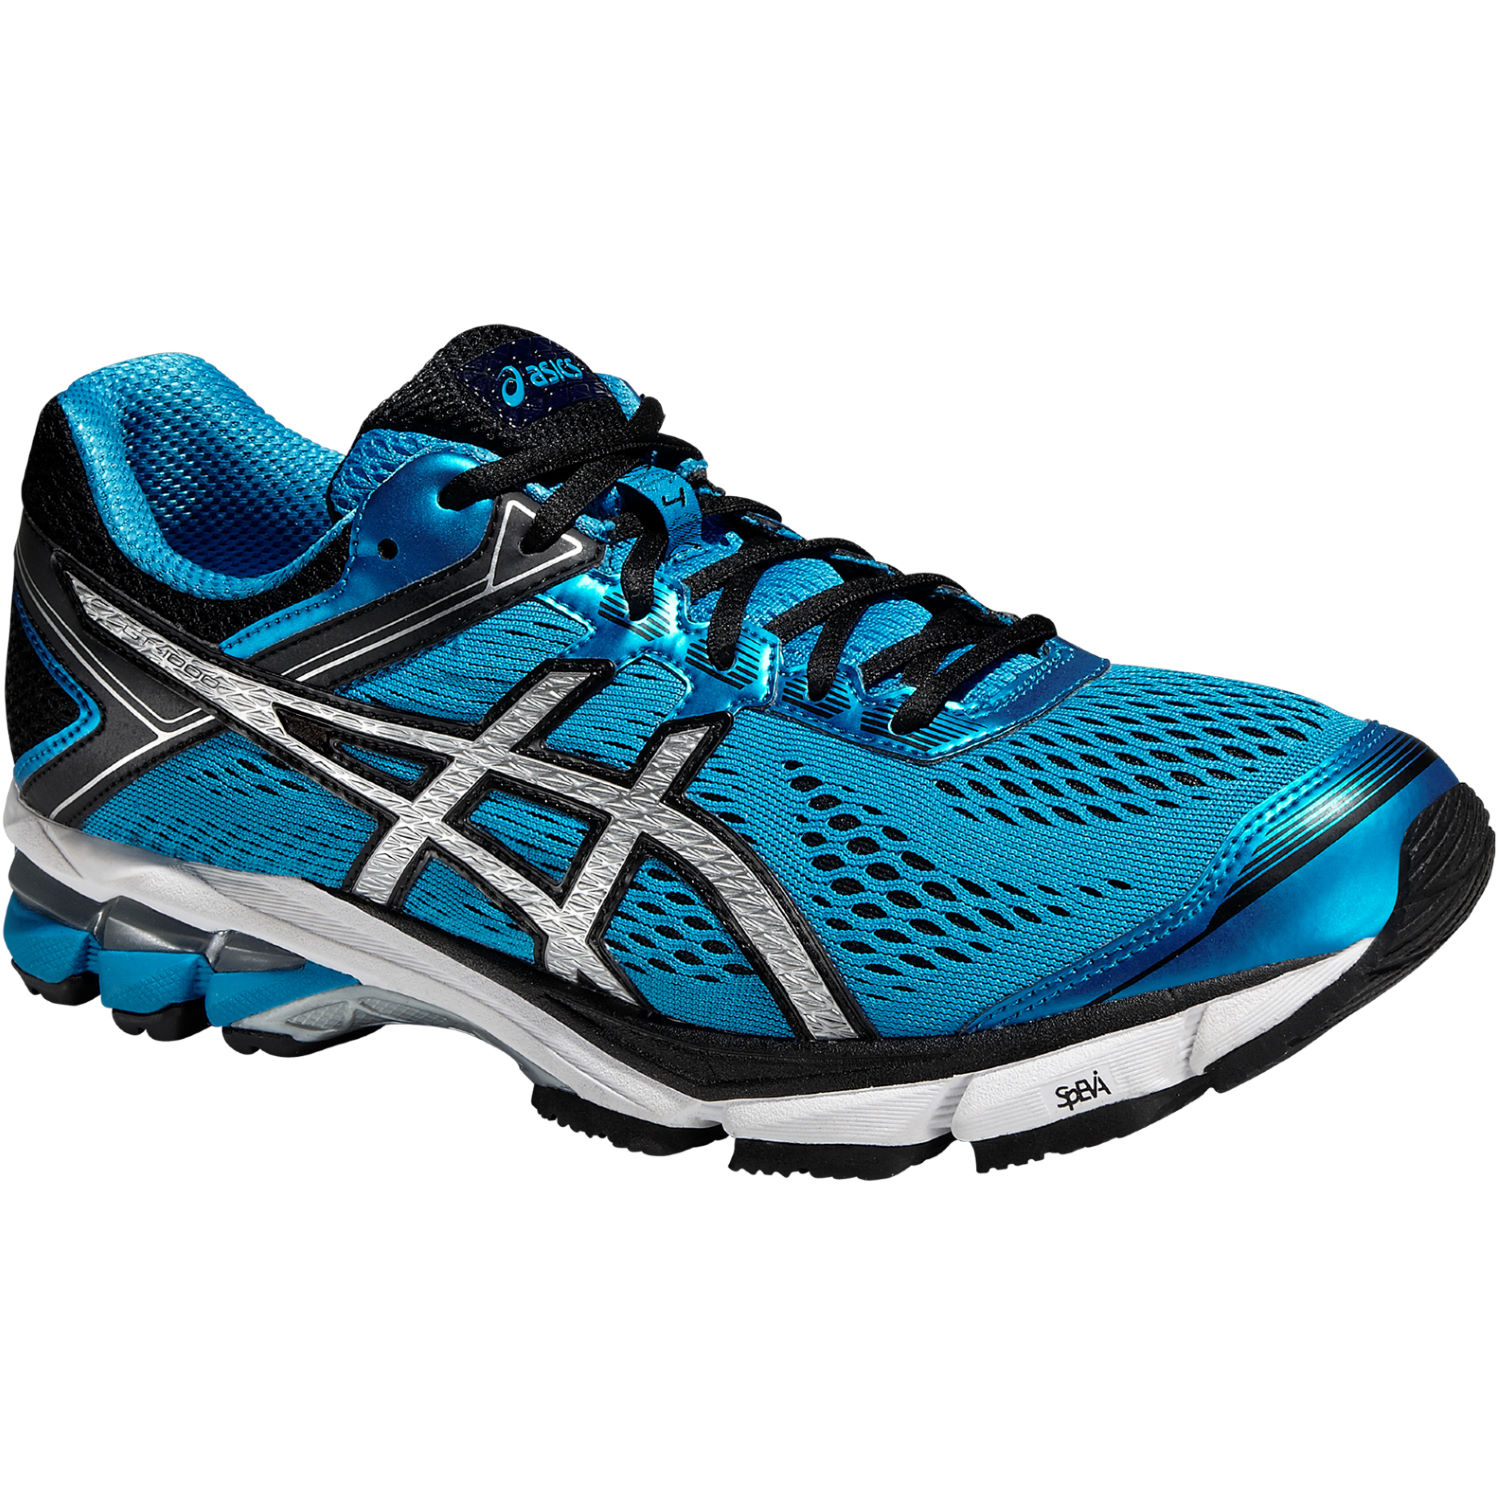 Wiggle Asics Gt 1000 4 Shoes Ss16 Stability Running